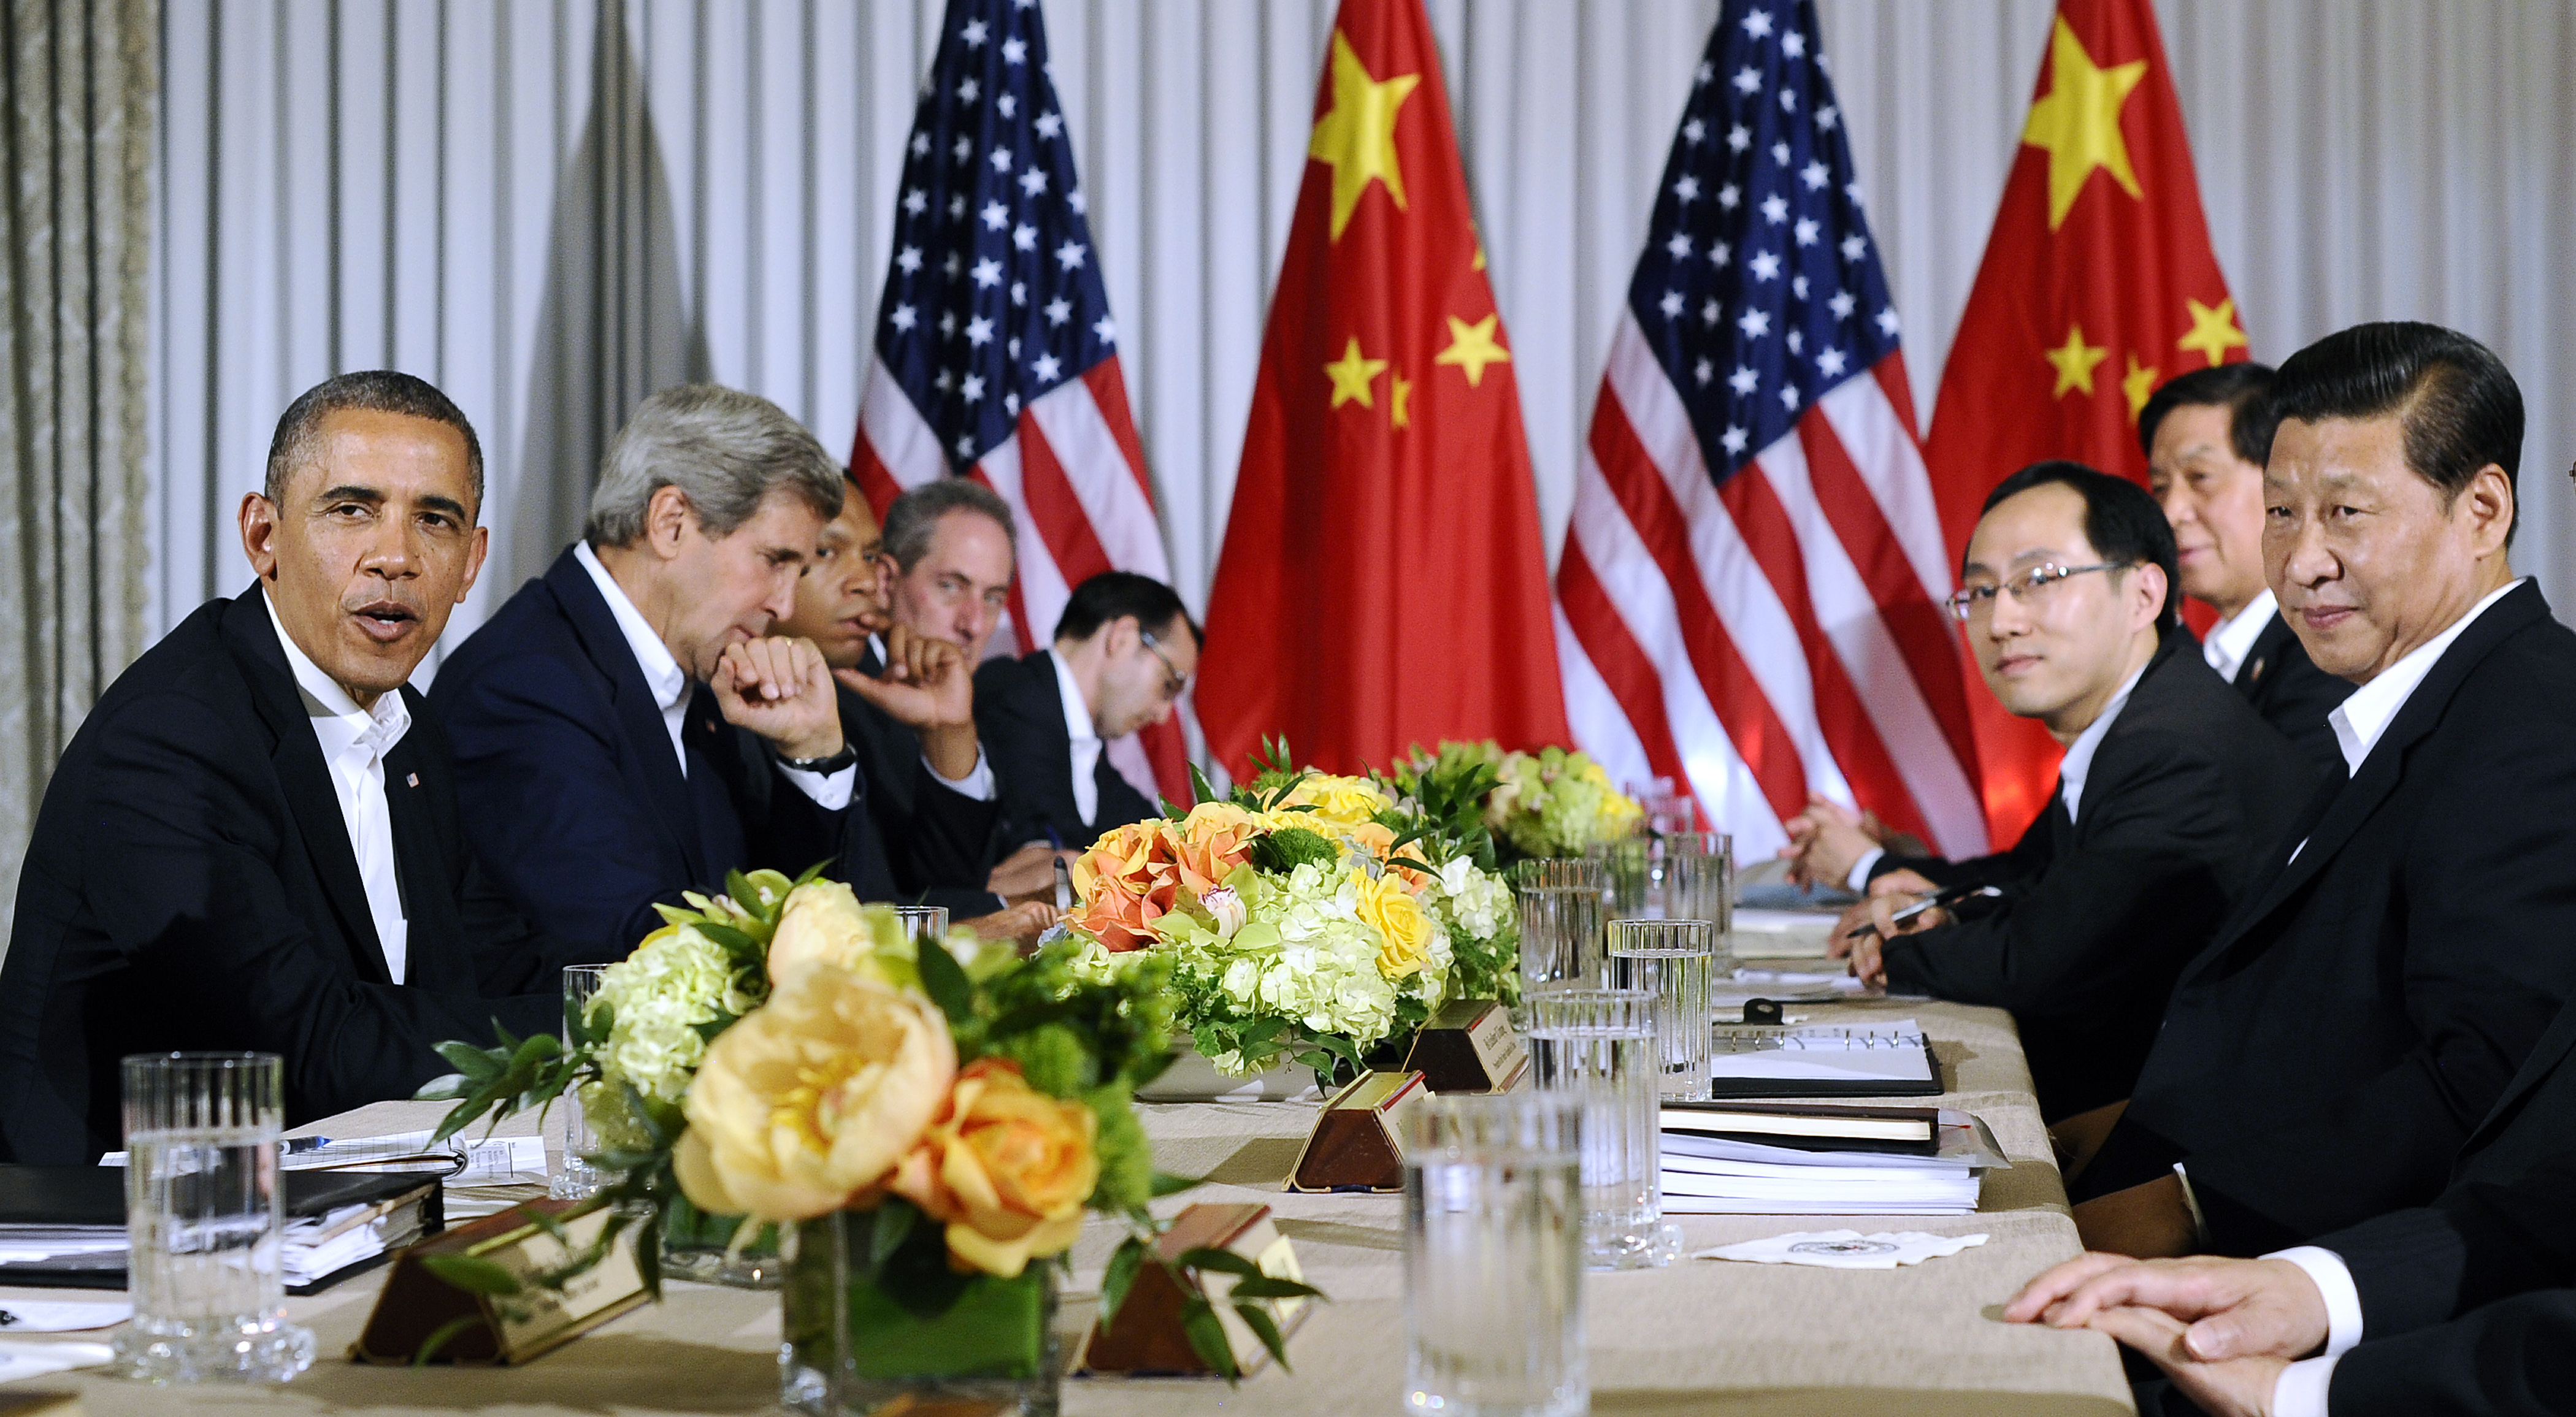 President Barack Obama speaks during a bilateral meeting with Chinese leader Xi Jinping at the Annenberg Retreat at Sunnylands in Rancho Mirage, Calif., on June 7, 2013. (JEWEL SAMAD/AFP/Getty Images)